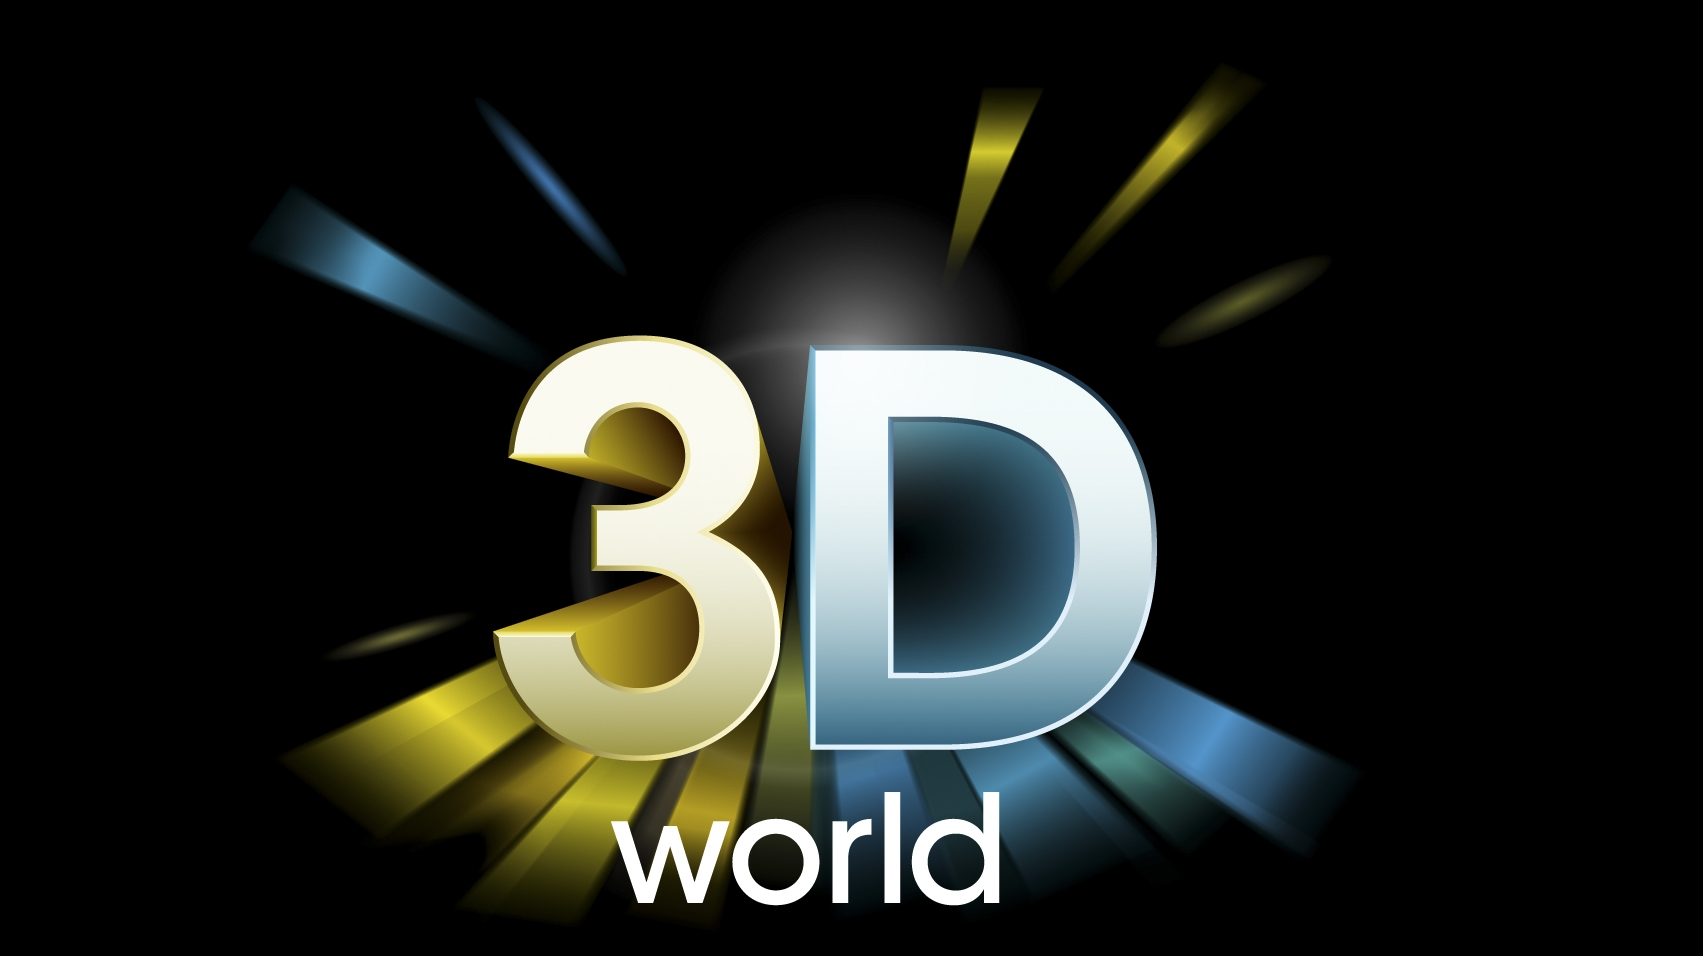 LOGO-3D-WORLD